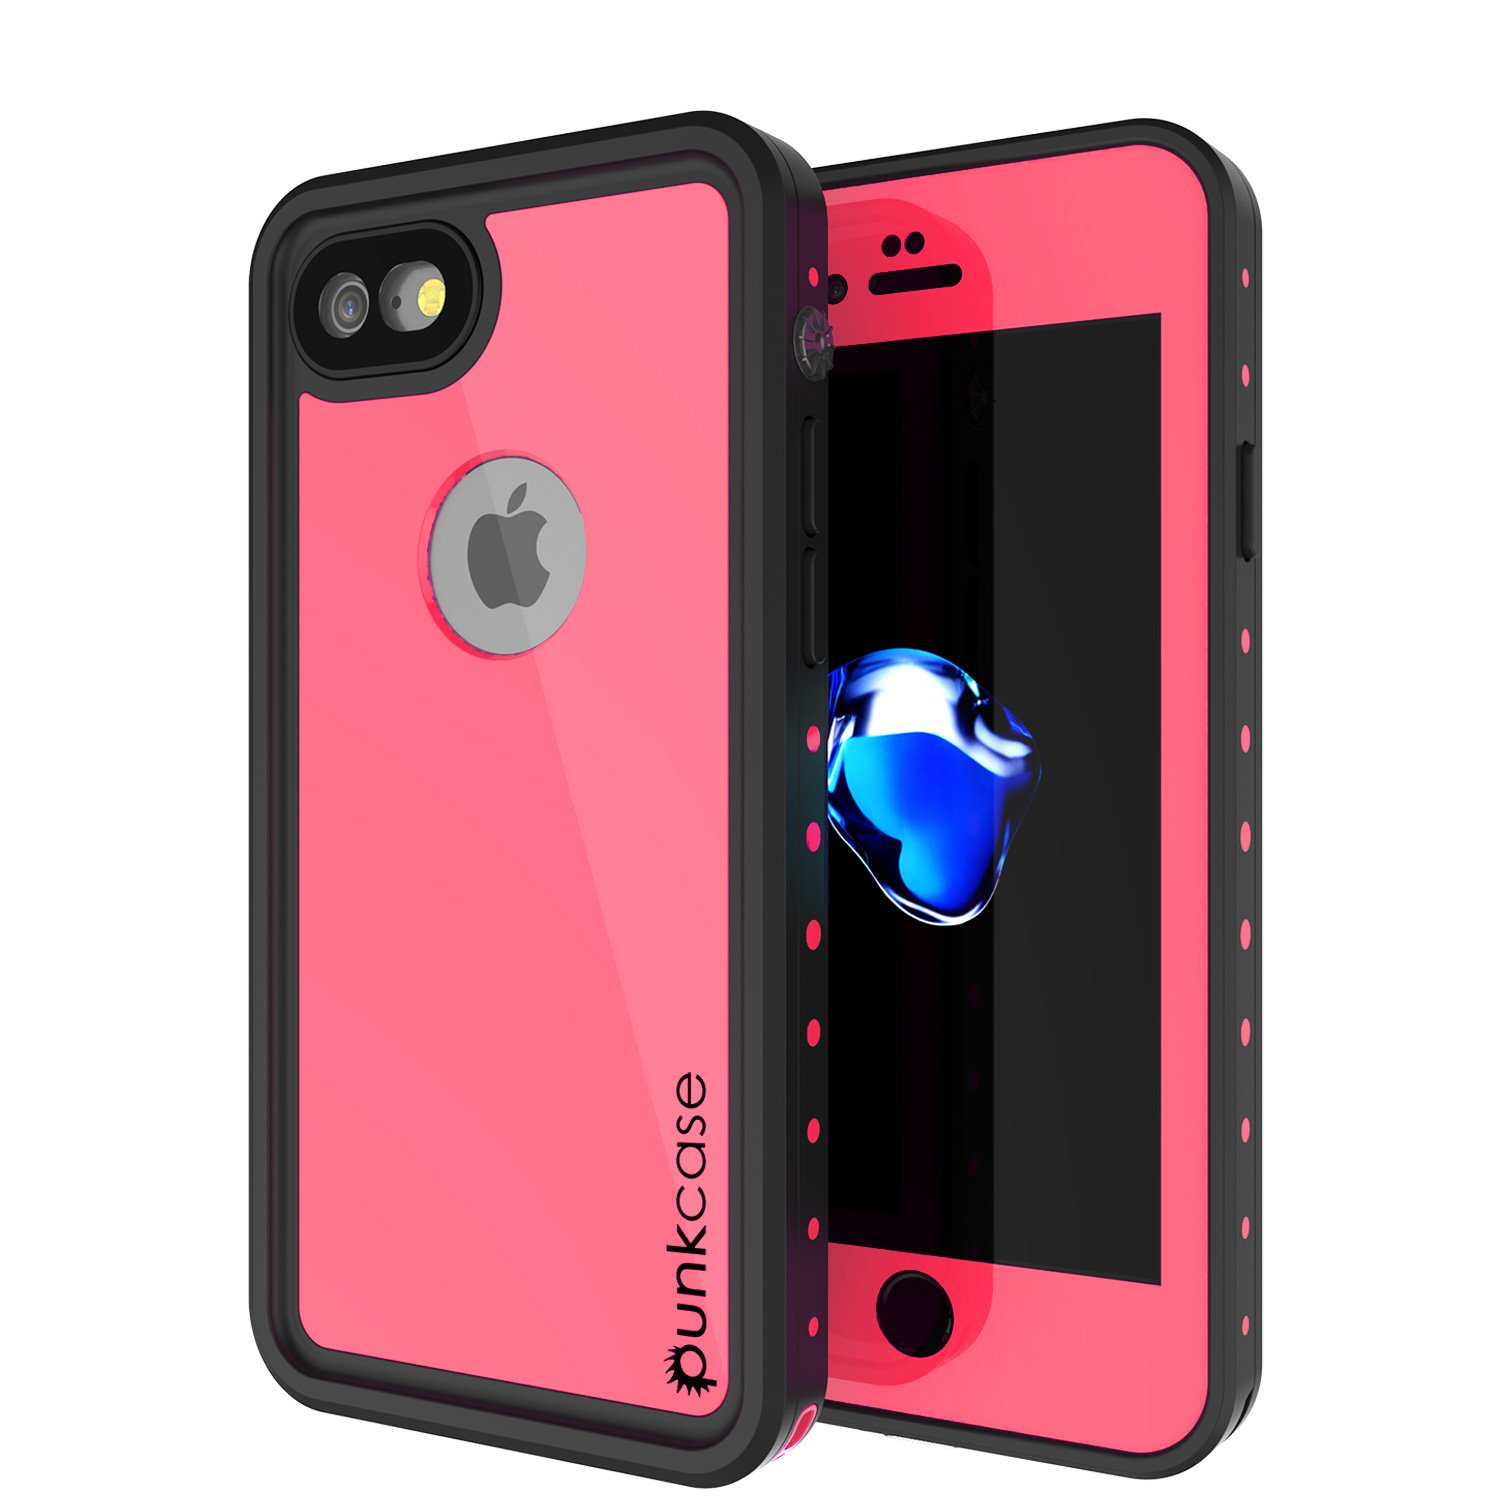 iPhone 8 Waterproof Case, Punkcase [StudStar Series] [Slim Fit] [IP68 Certified] [Shockproof] [Dirtproof] [Snowproof] Universal Armor Cover for Apple iPhone 7 & 8 [Pink]